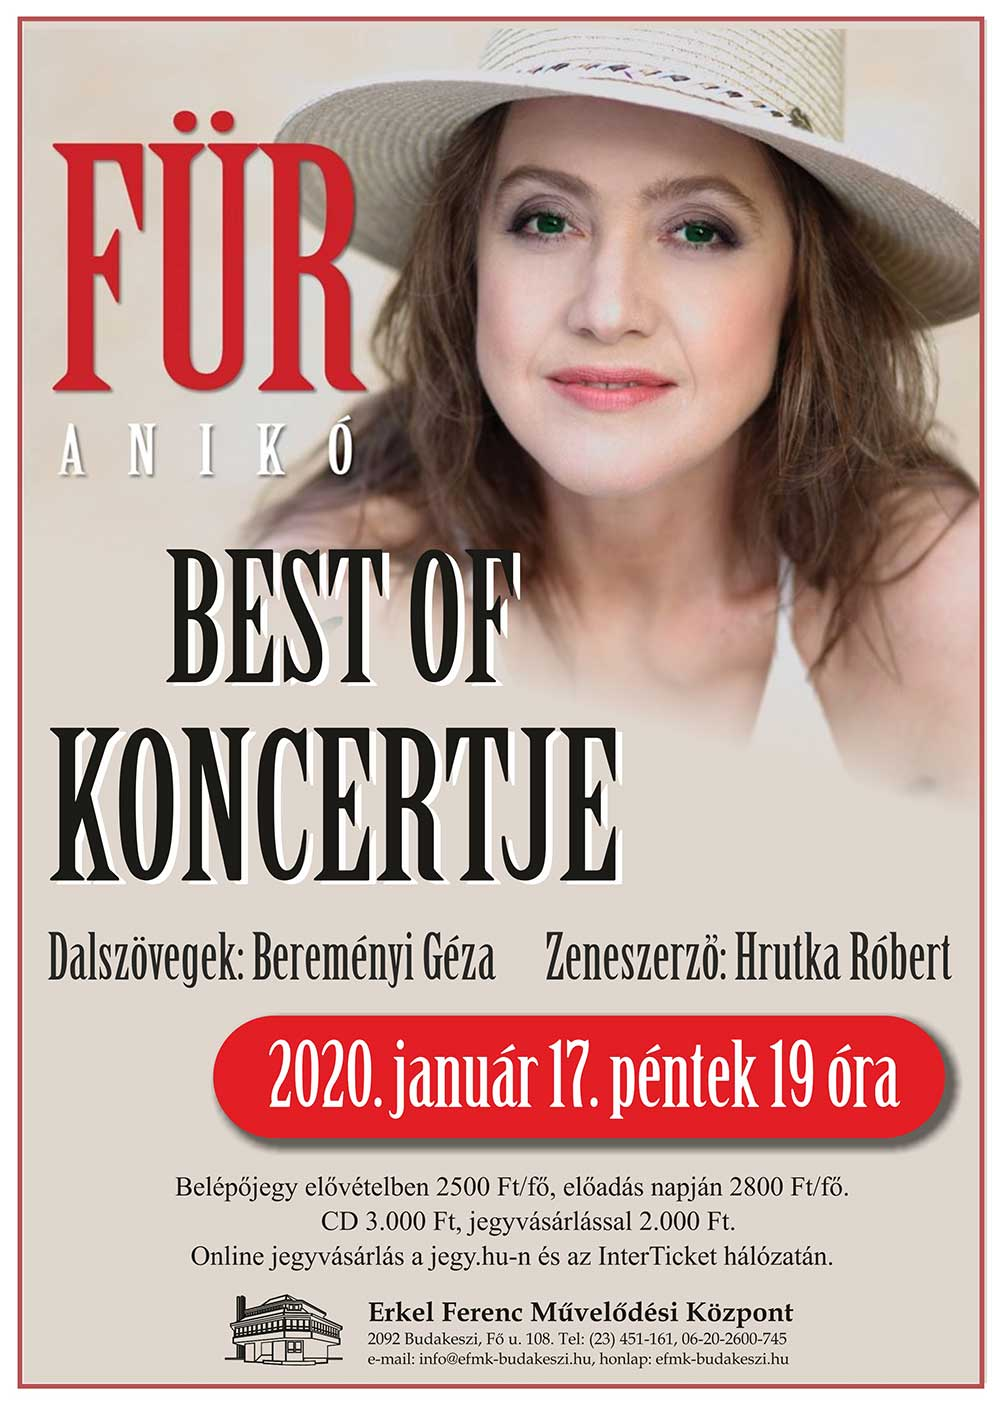 Für Anikó - Best of koncert